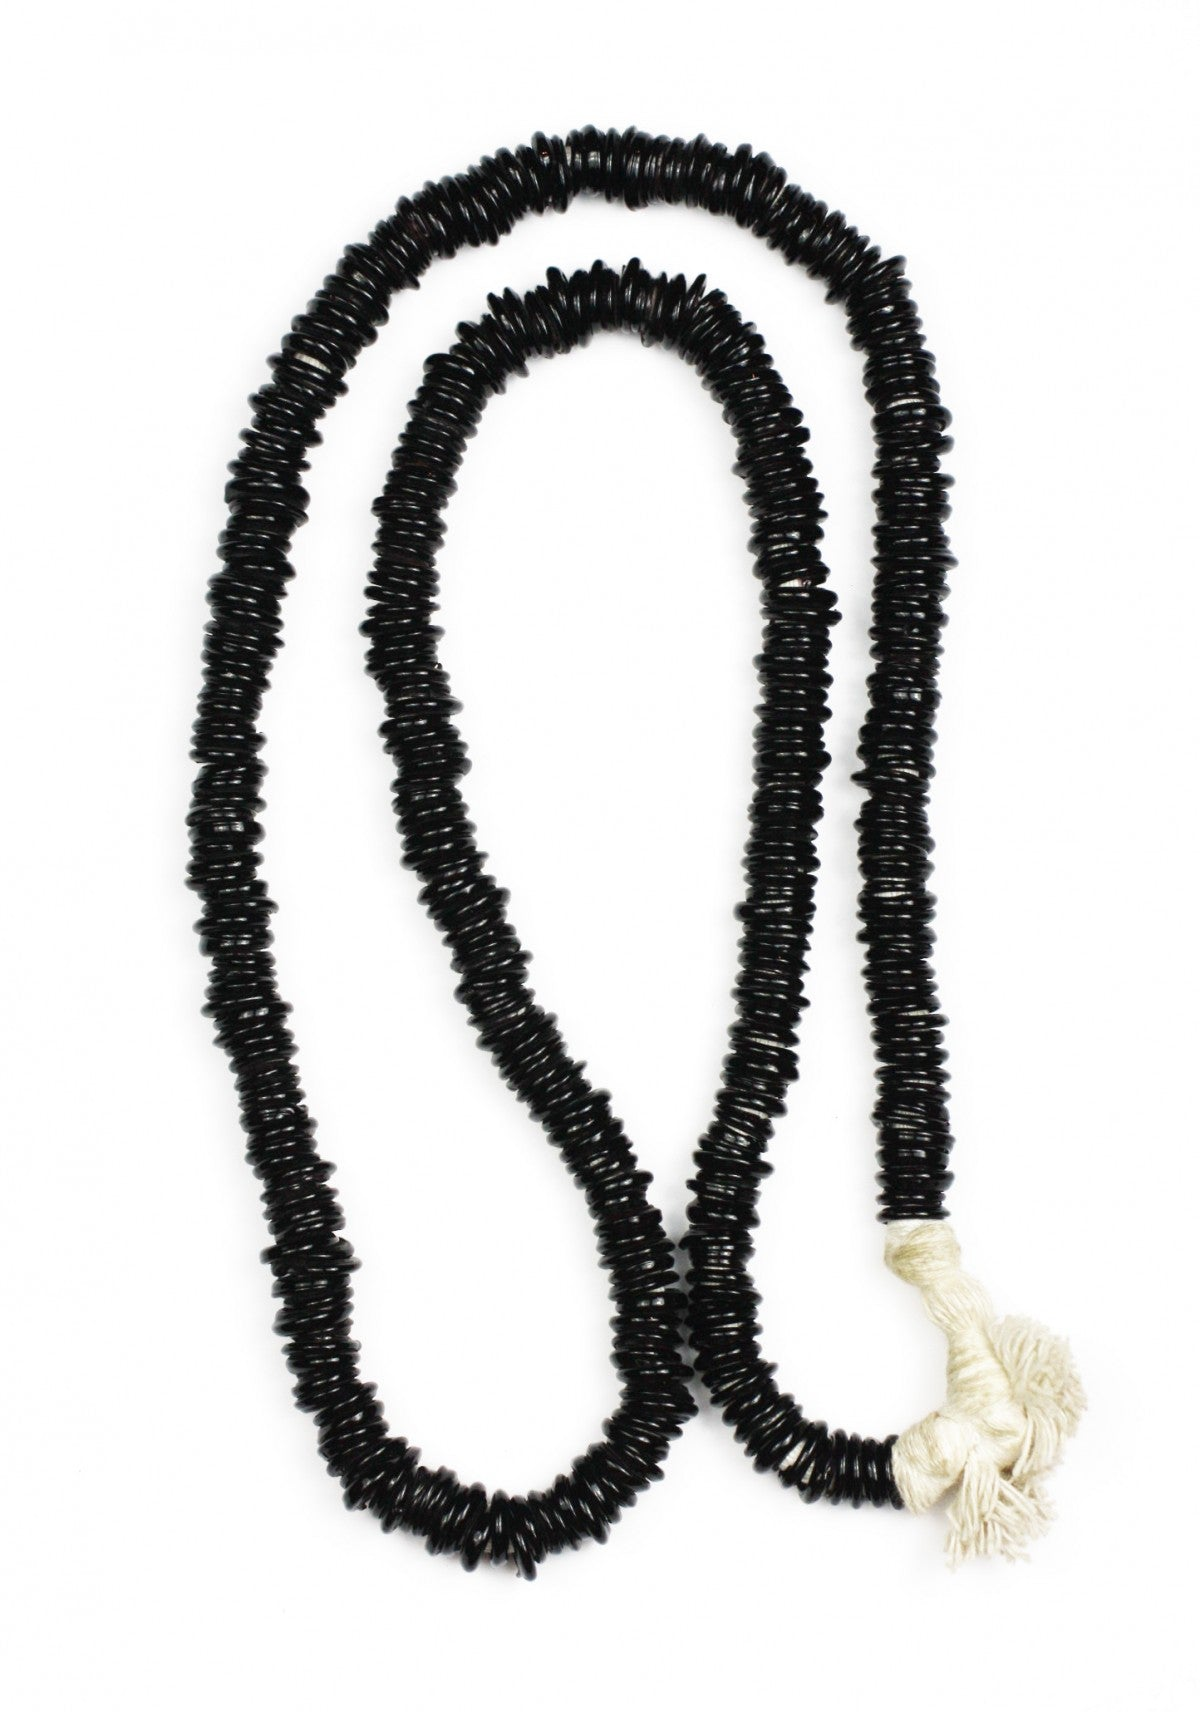 Trade Bead Necklace